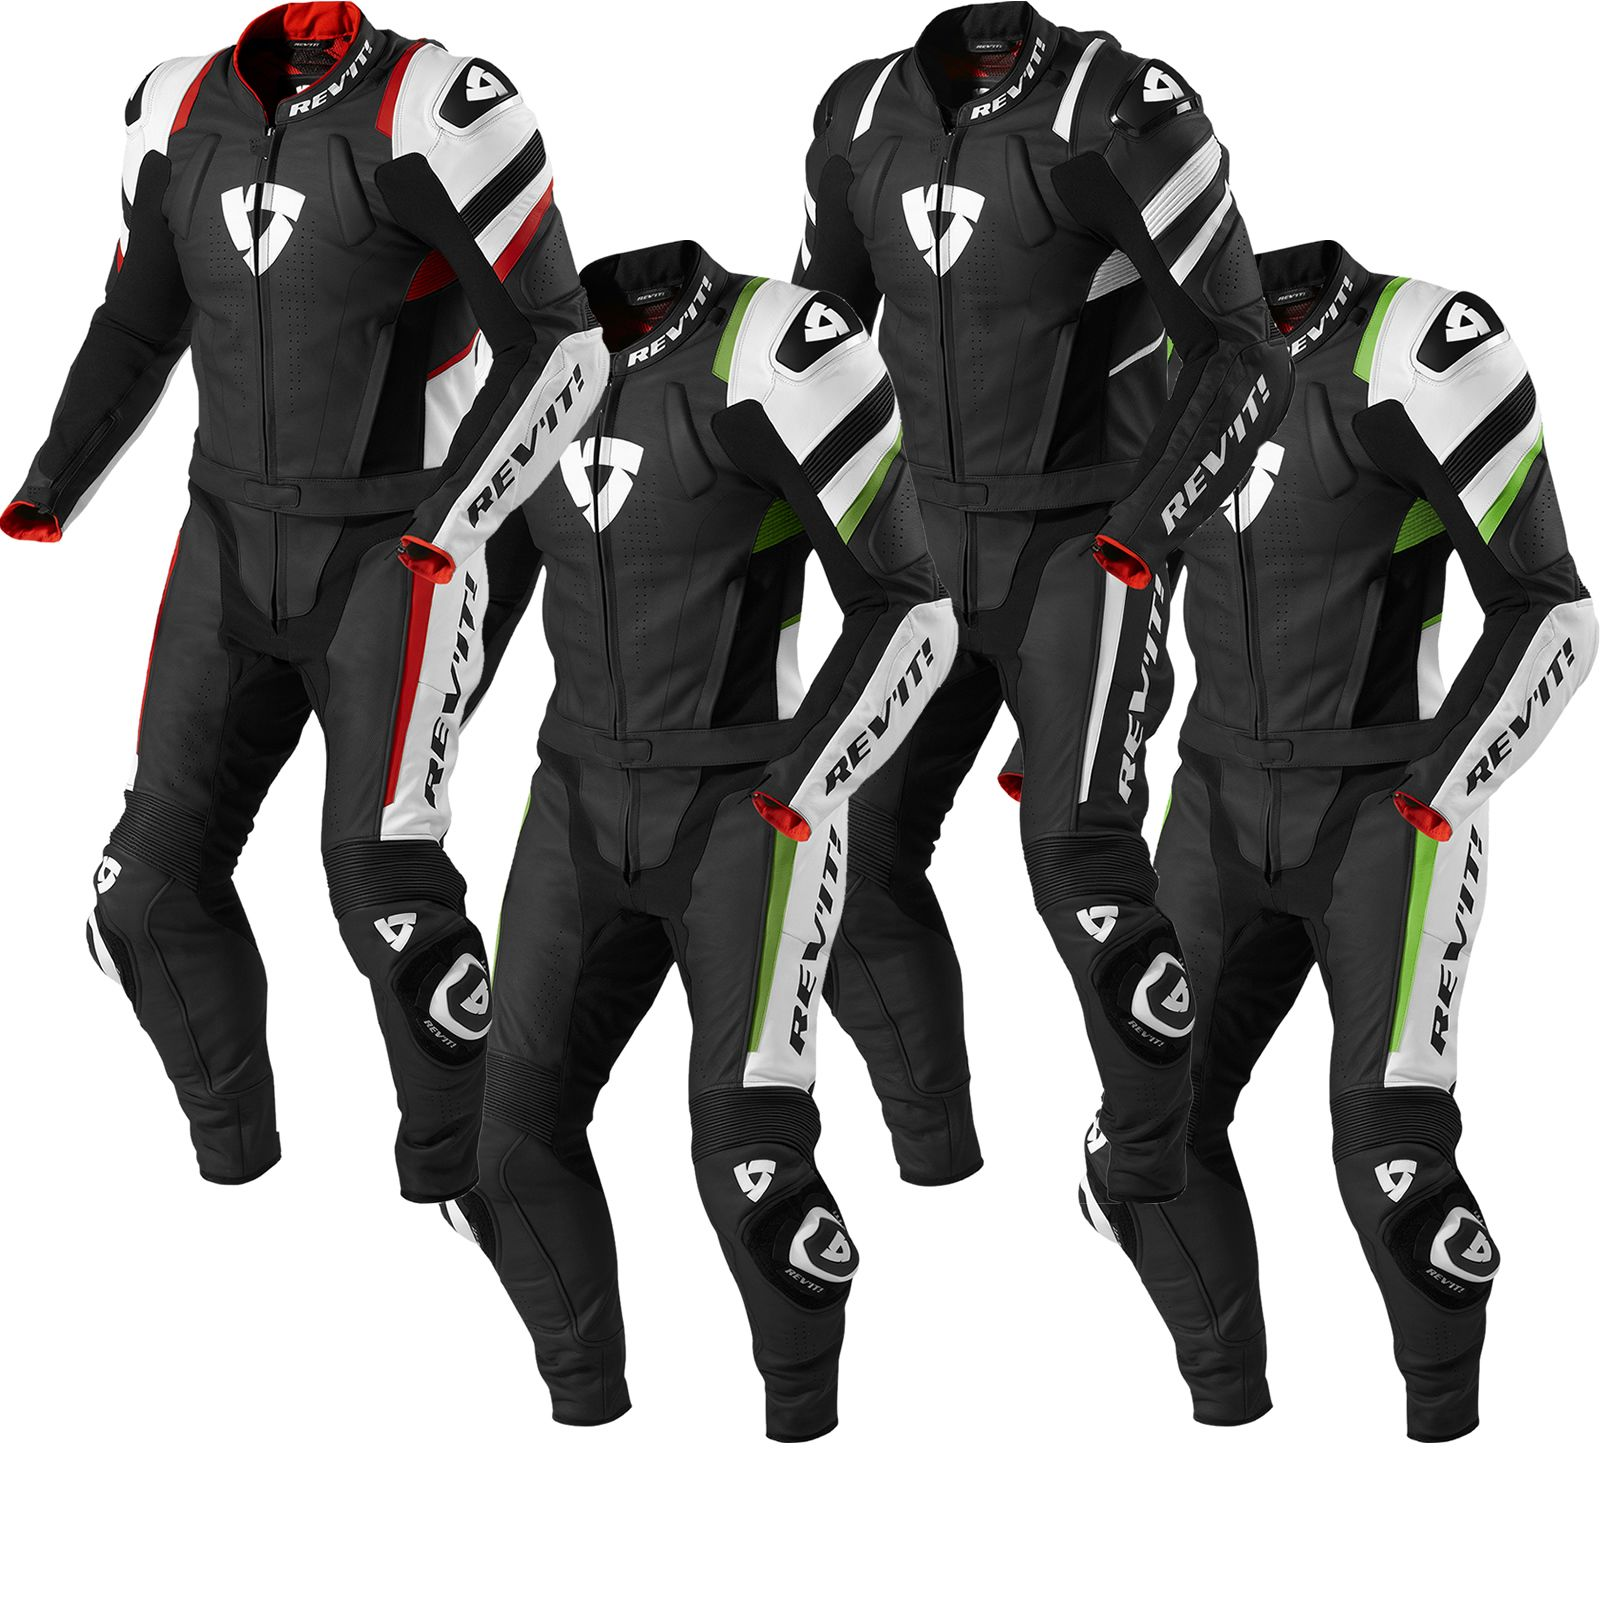 Rev it combi stellar motorcycle suit leather suits ghostbikes com